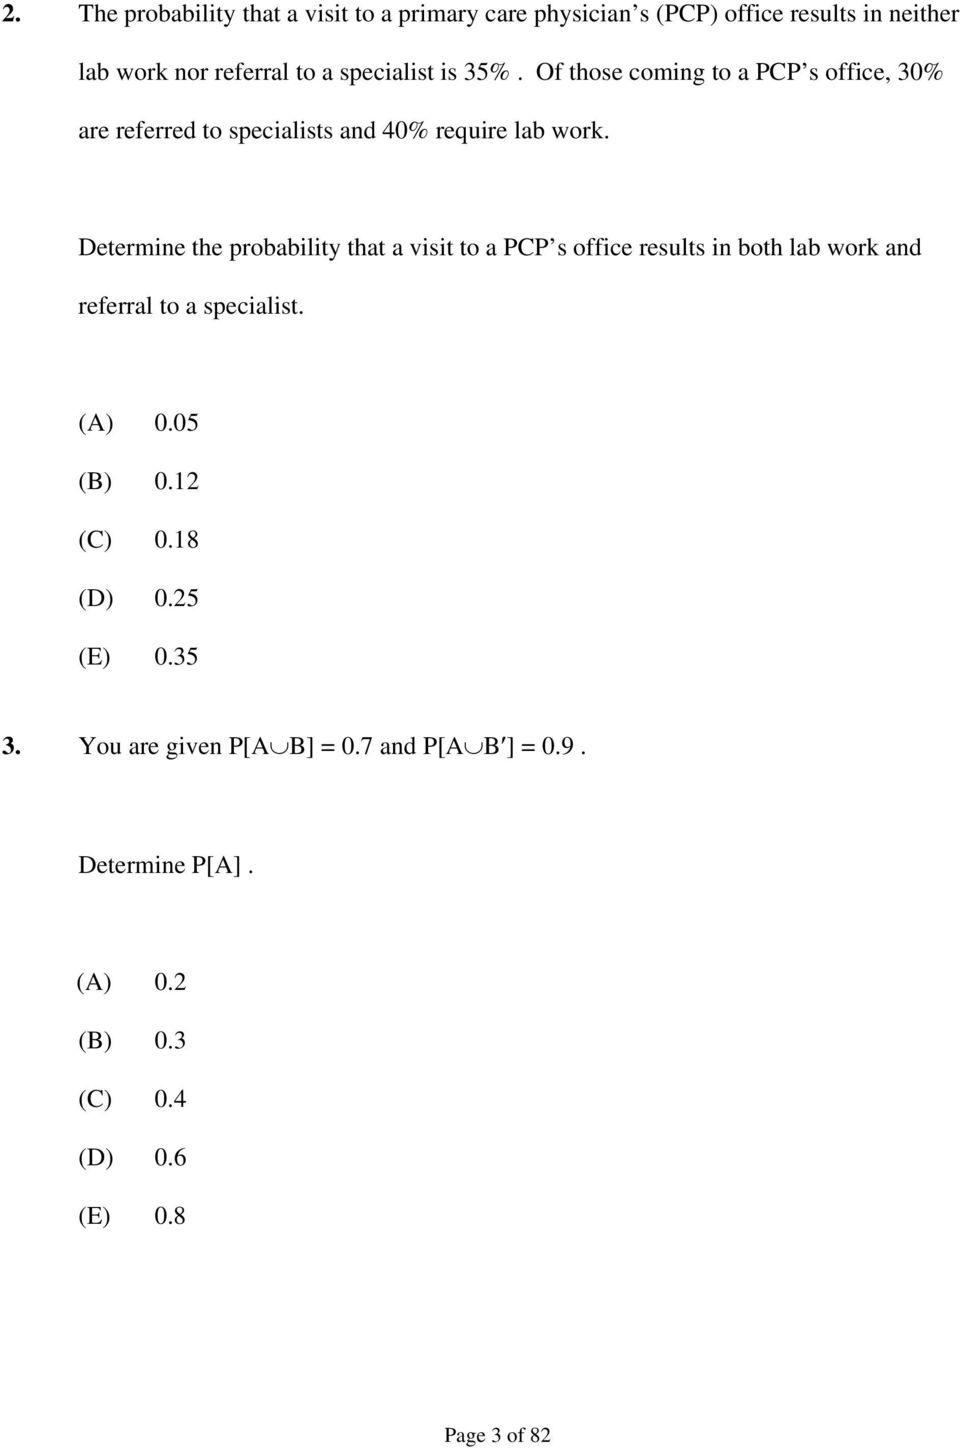 SOCIETY OF ACTUARIES/CASUALTY ACTUARIAL SOCIETY EXAM P PROBABILITY